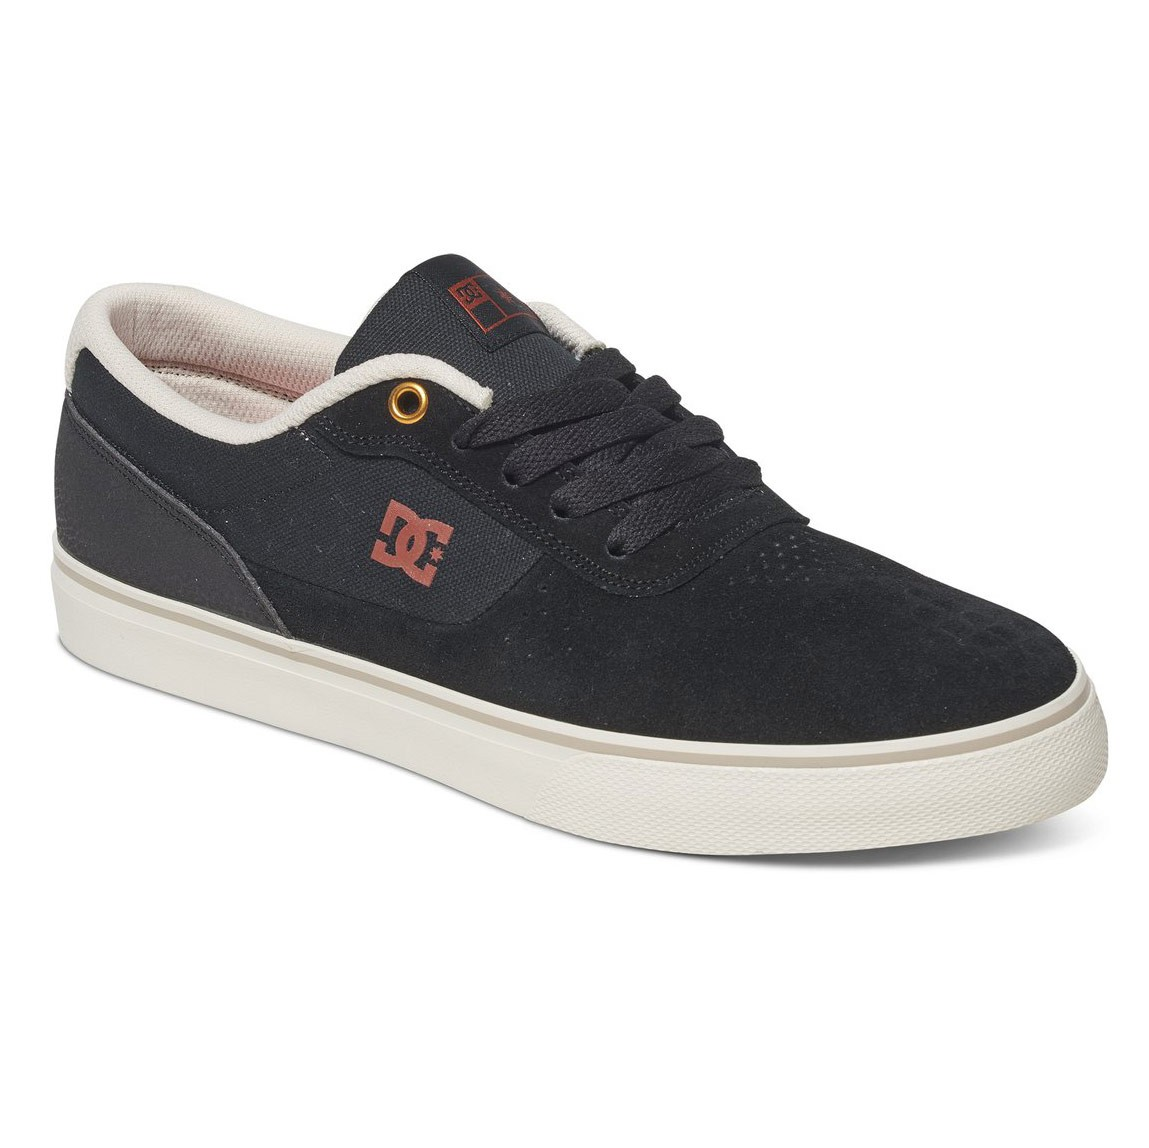 Tenisky DC Switch S black/turtledove